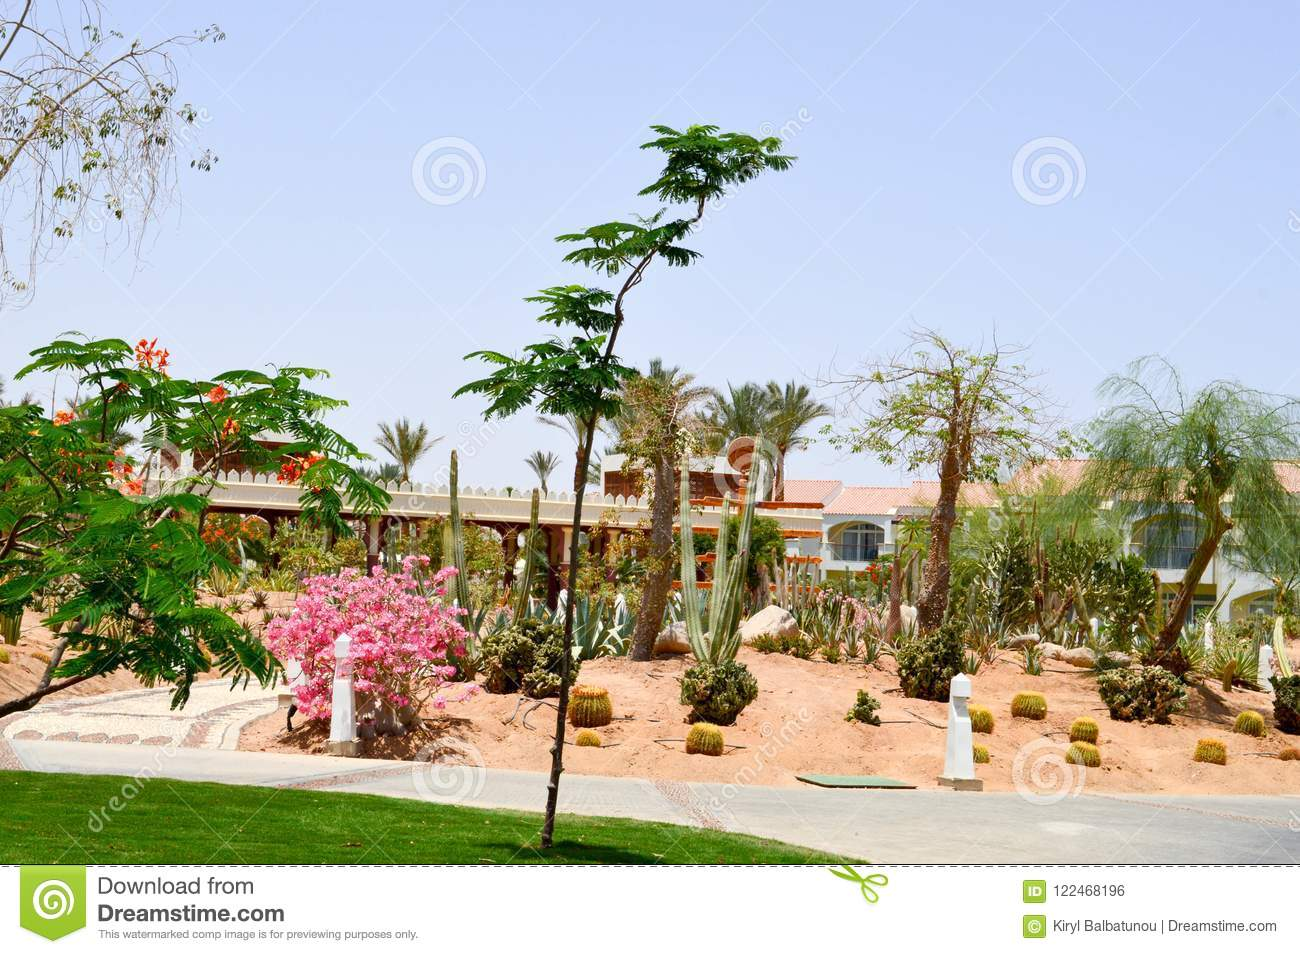 Park with cactus exotic tropical desert against white stone buildings in Mexican Latin American style against the blue sky